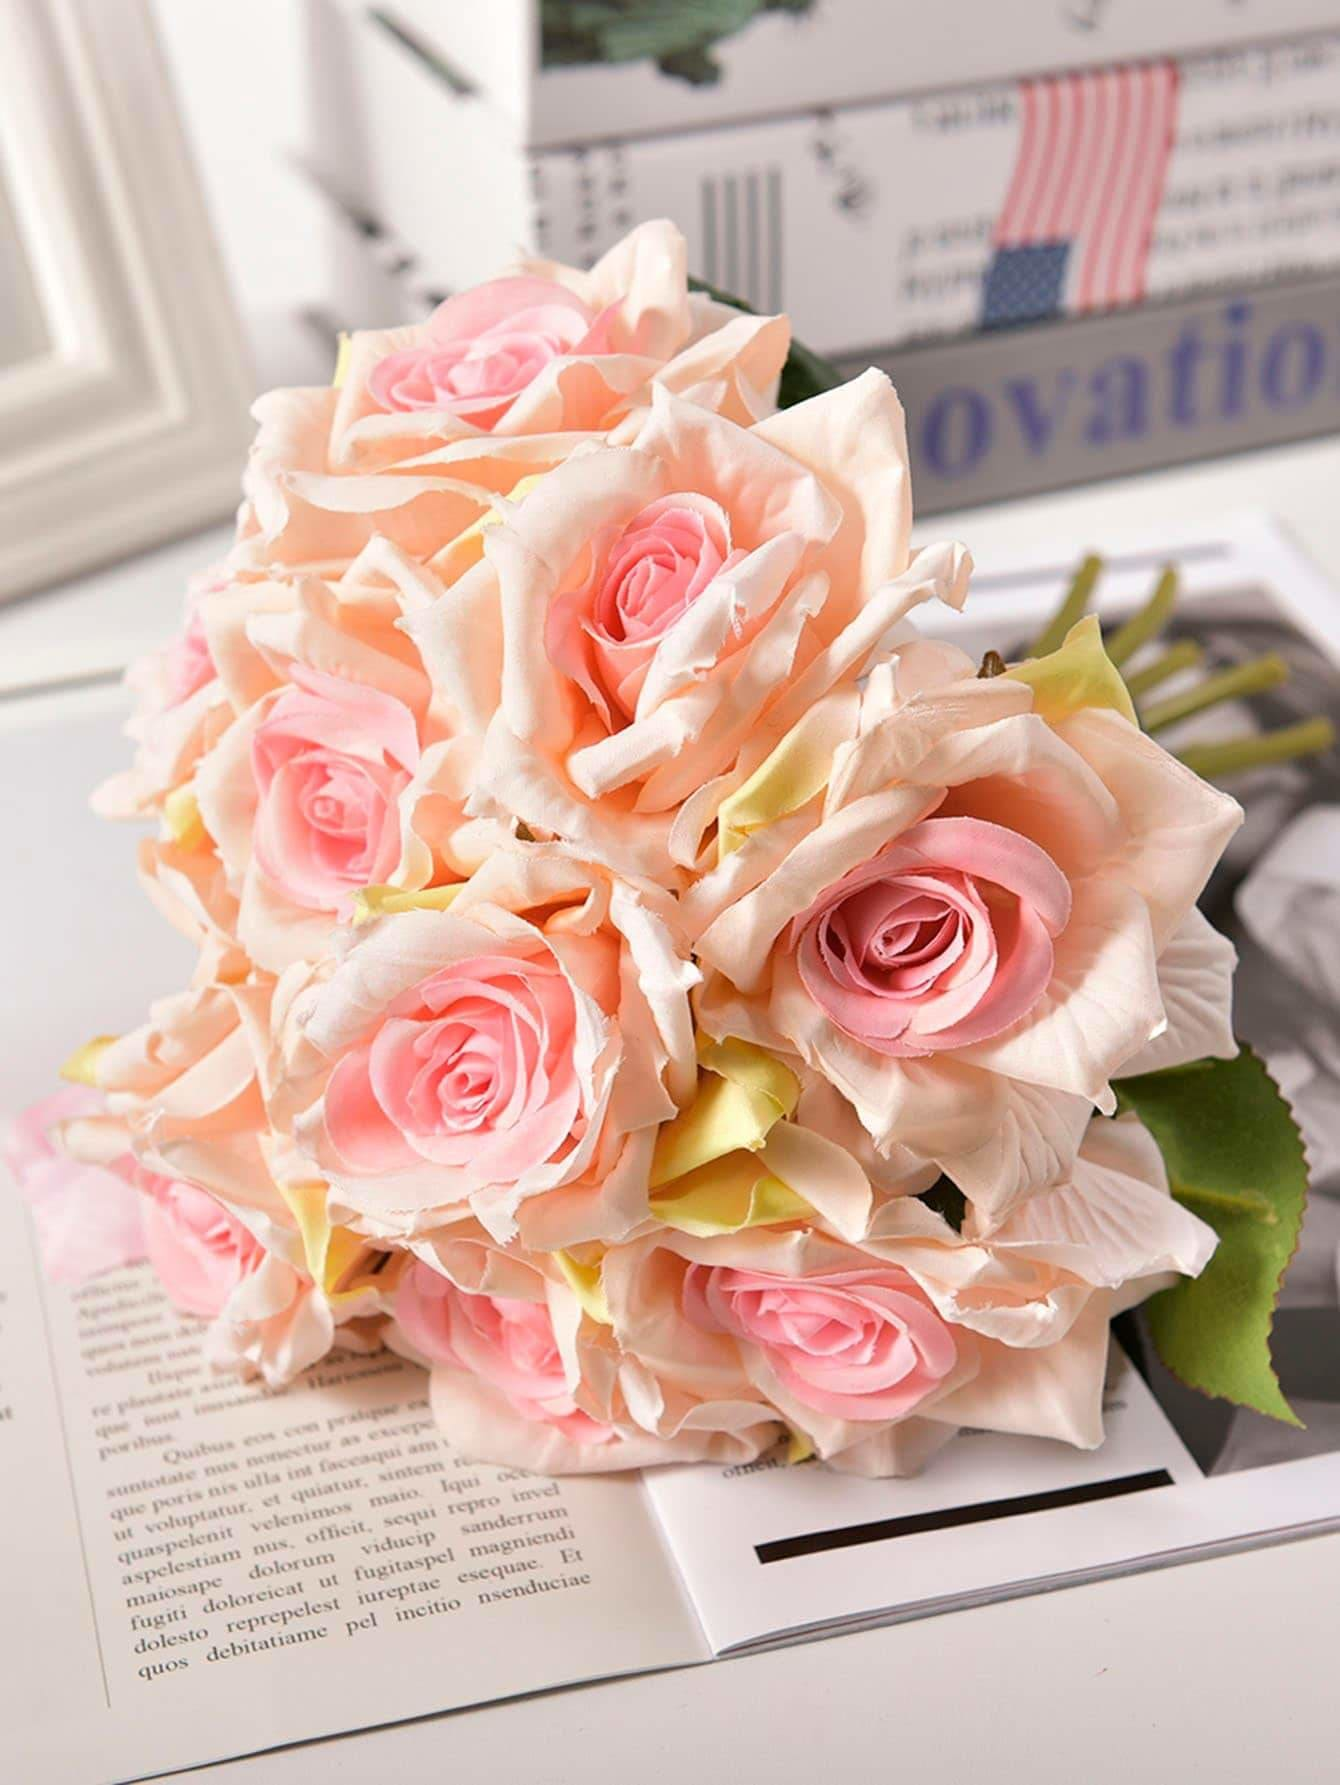 5pcs Rose Bouquet - Vases & Artificial Flowers